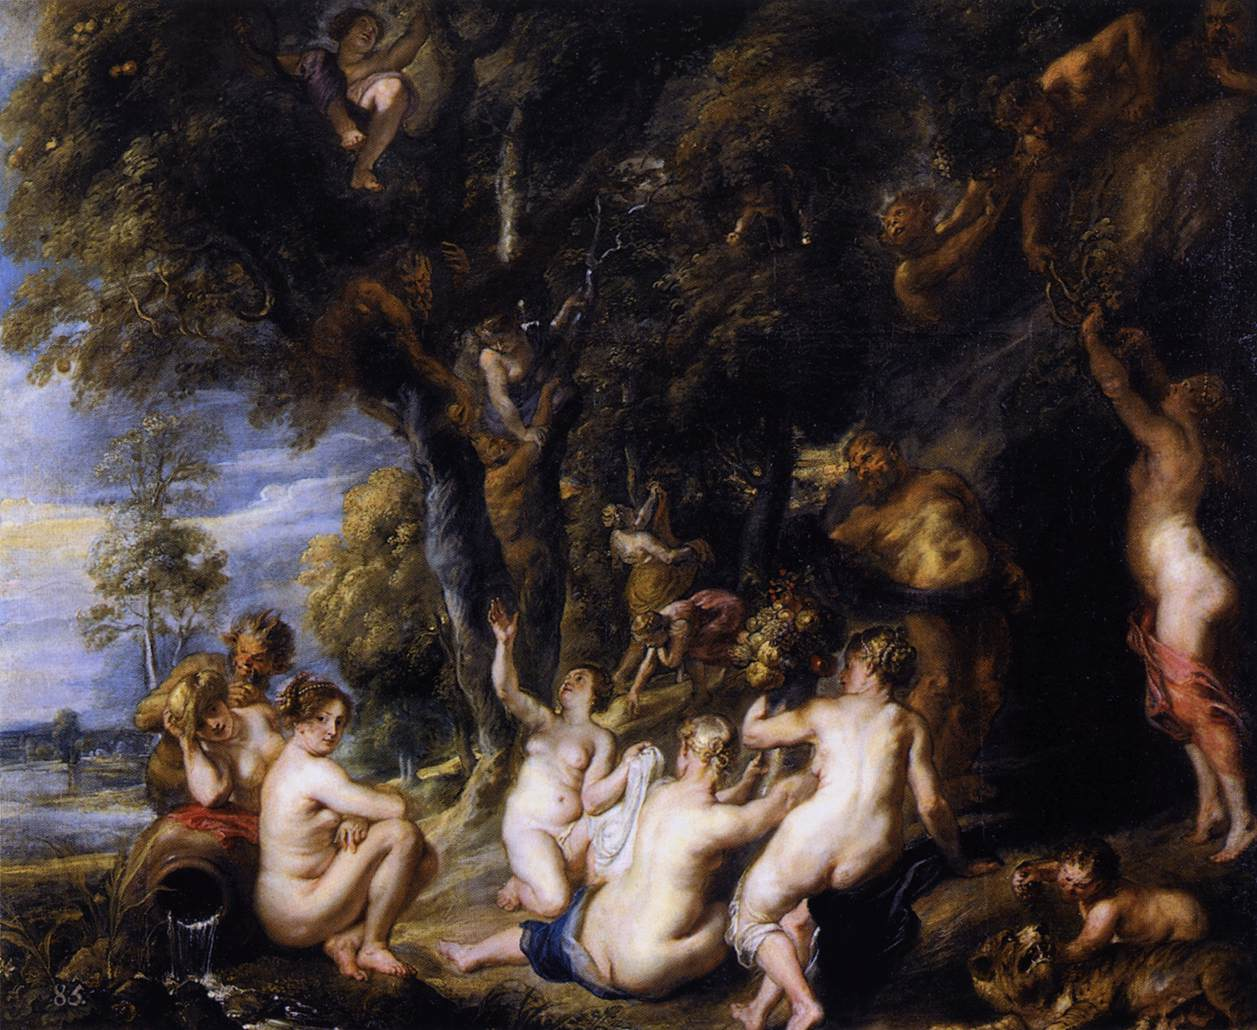 Peter Paul Rubens, Nimfen en Saters, Museo del Prado Madrid